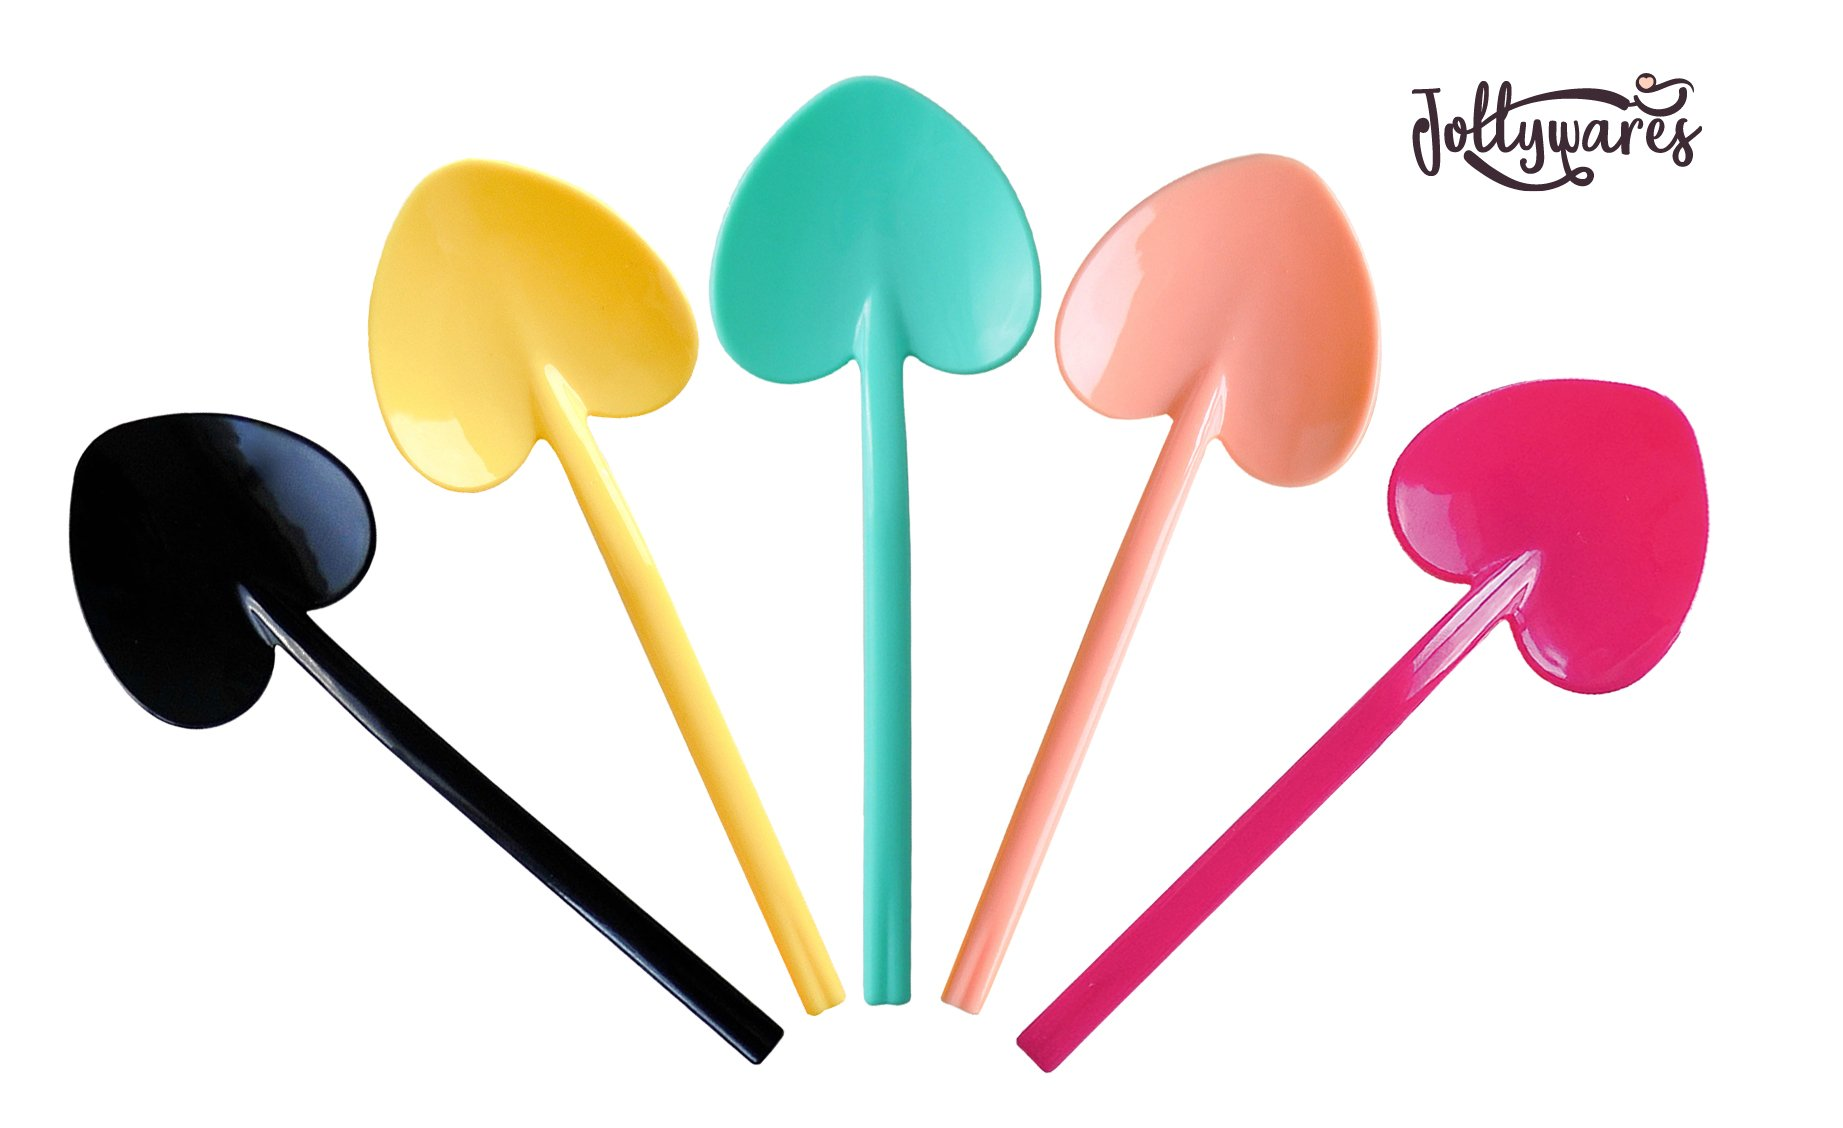 Jollywares 3.5'' Love Heart-Shaped Disposable Mini Plastic Tasting Spoons (Mixed Colors)(1 Pack of 180 pcs)